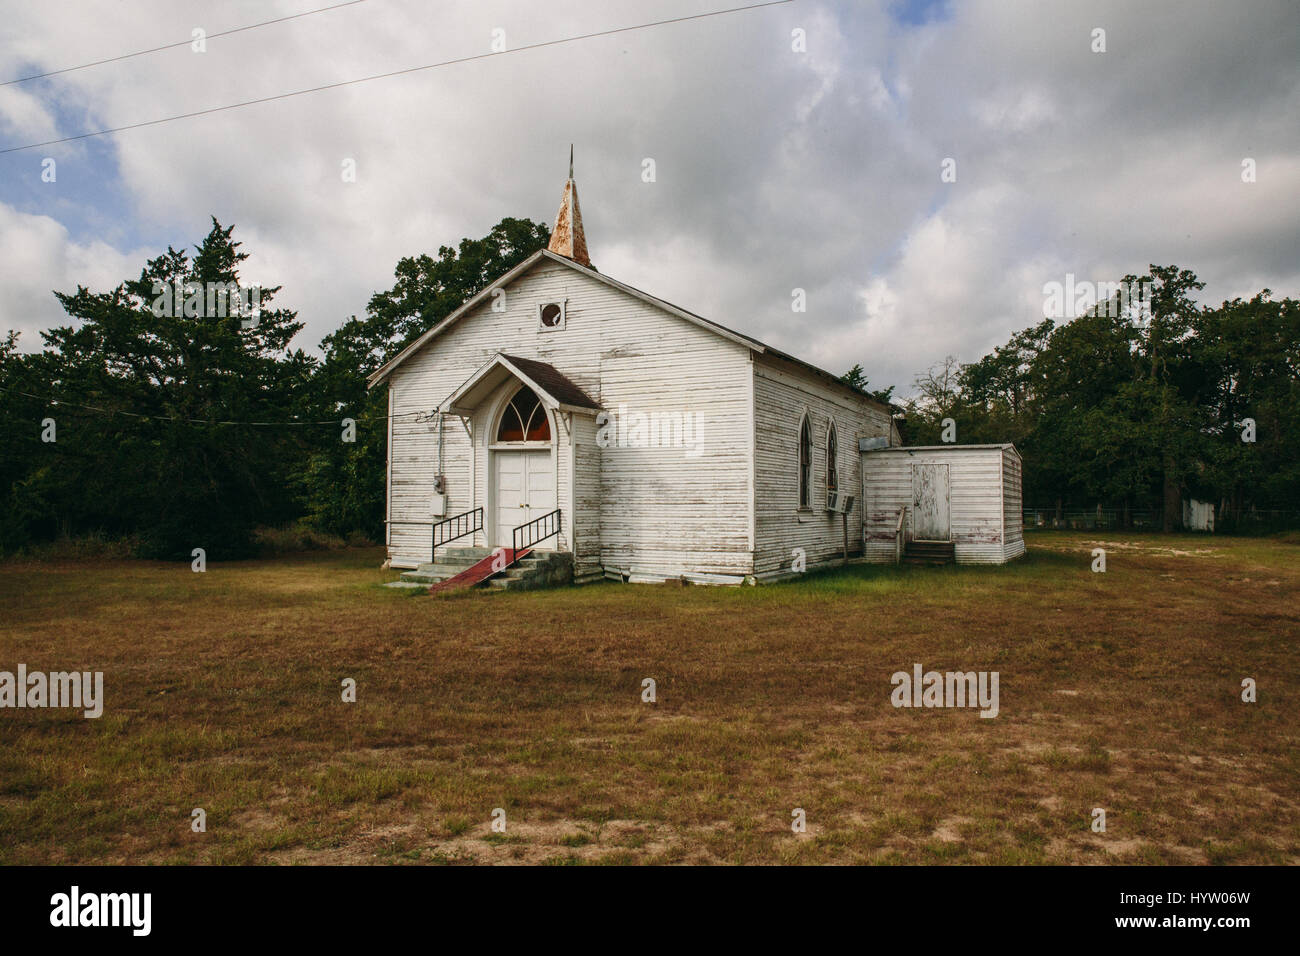 Église décrépit au Texas, USA Photo Stock